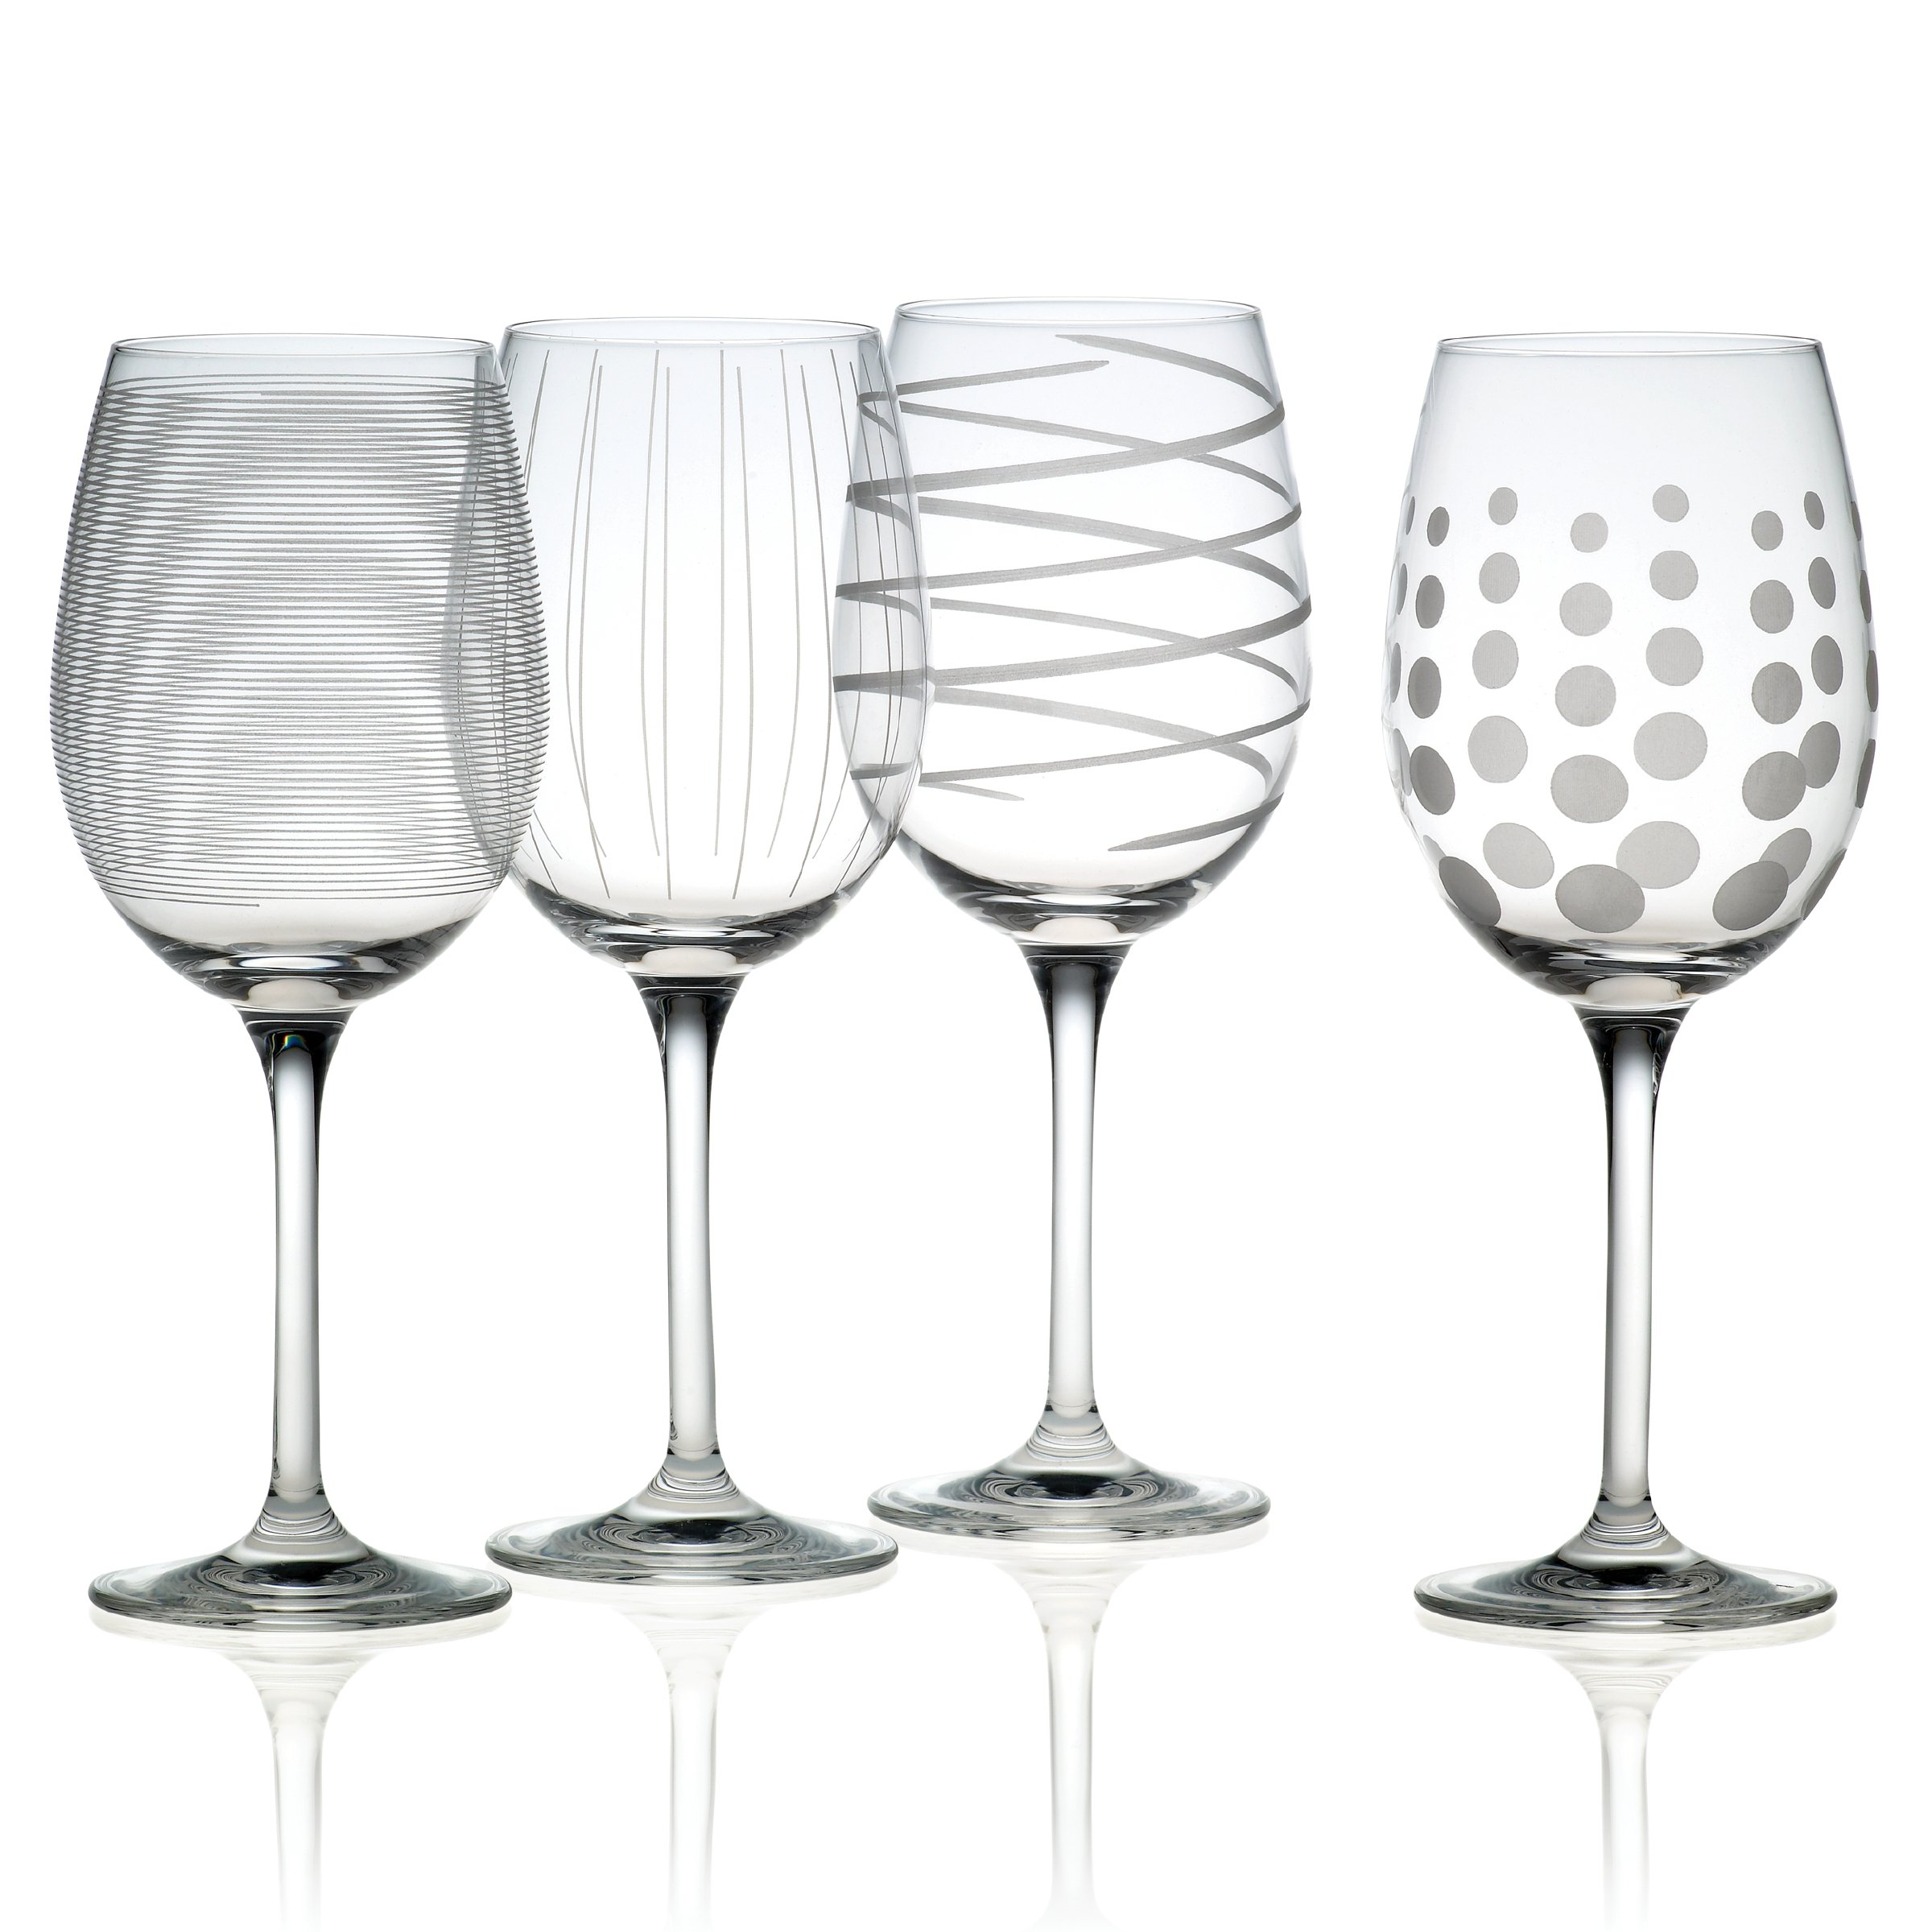 Mikasa Cheers Precision-Etched 16-oz White Wine Glasses, (Set of 4) by Mikasa